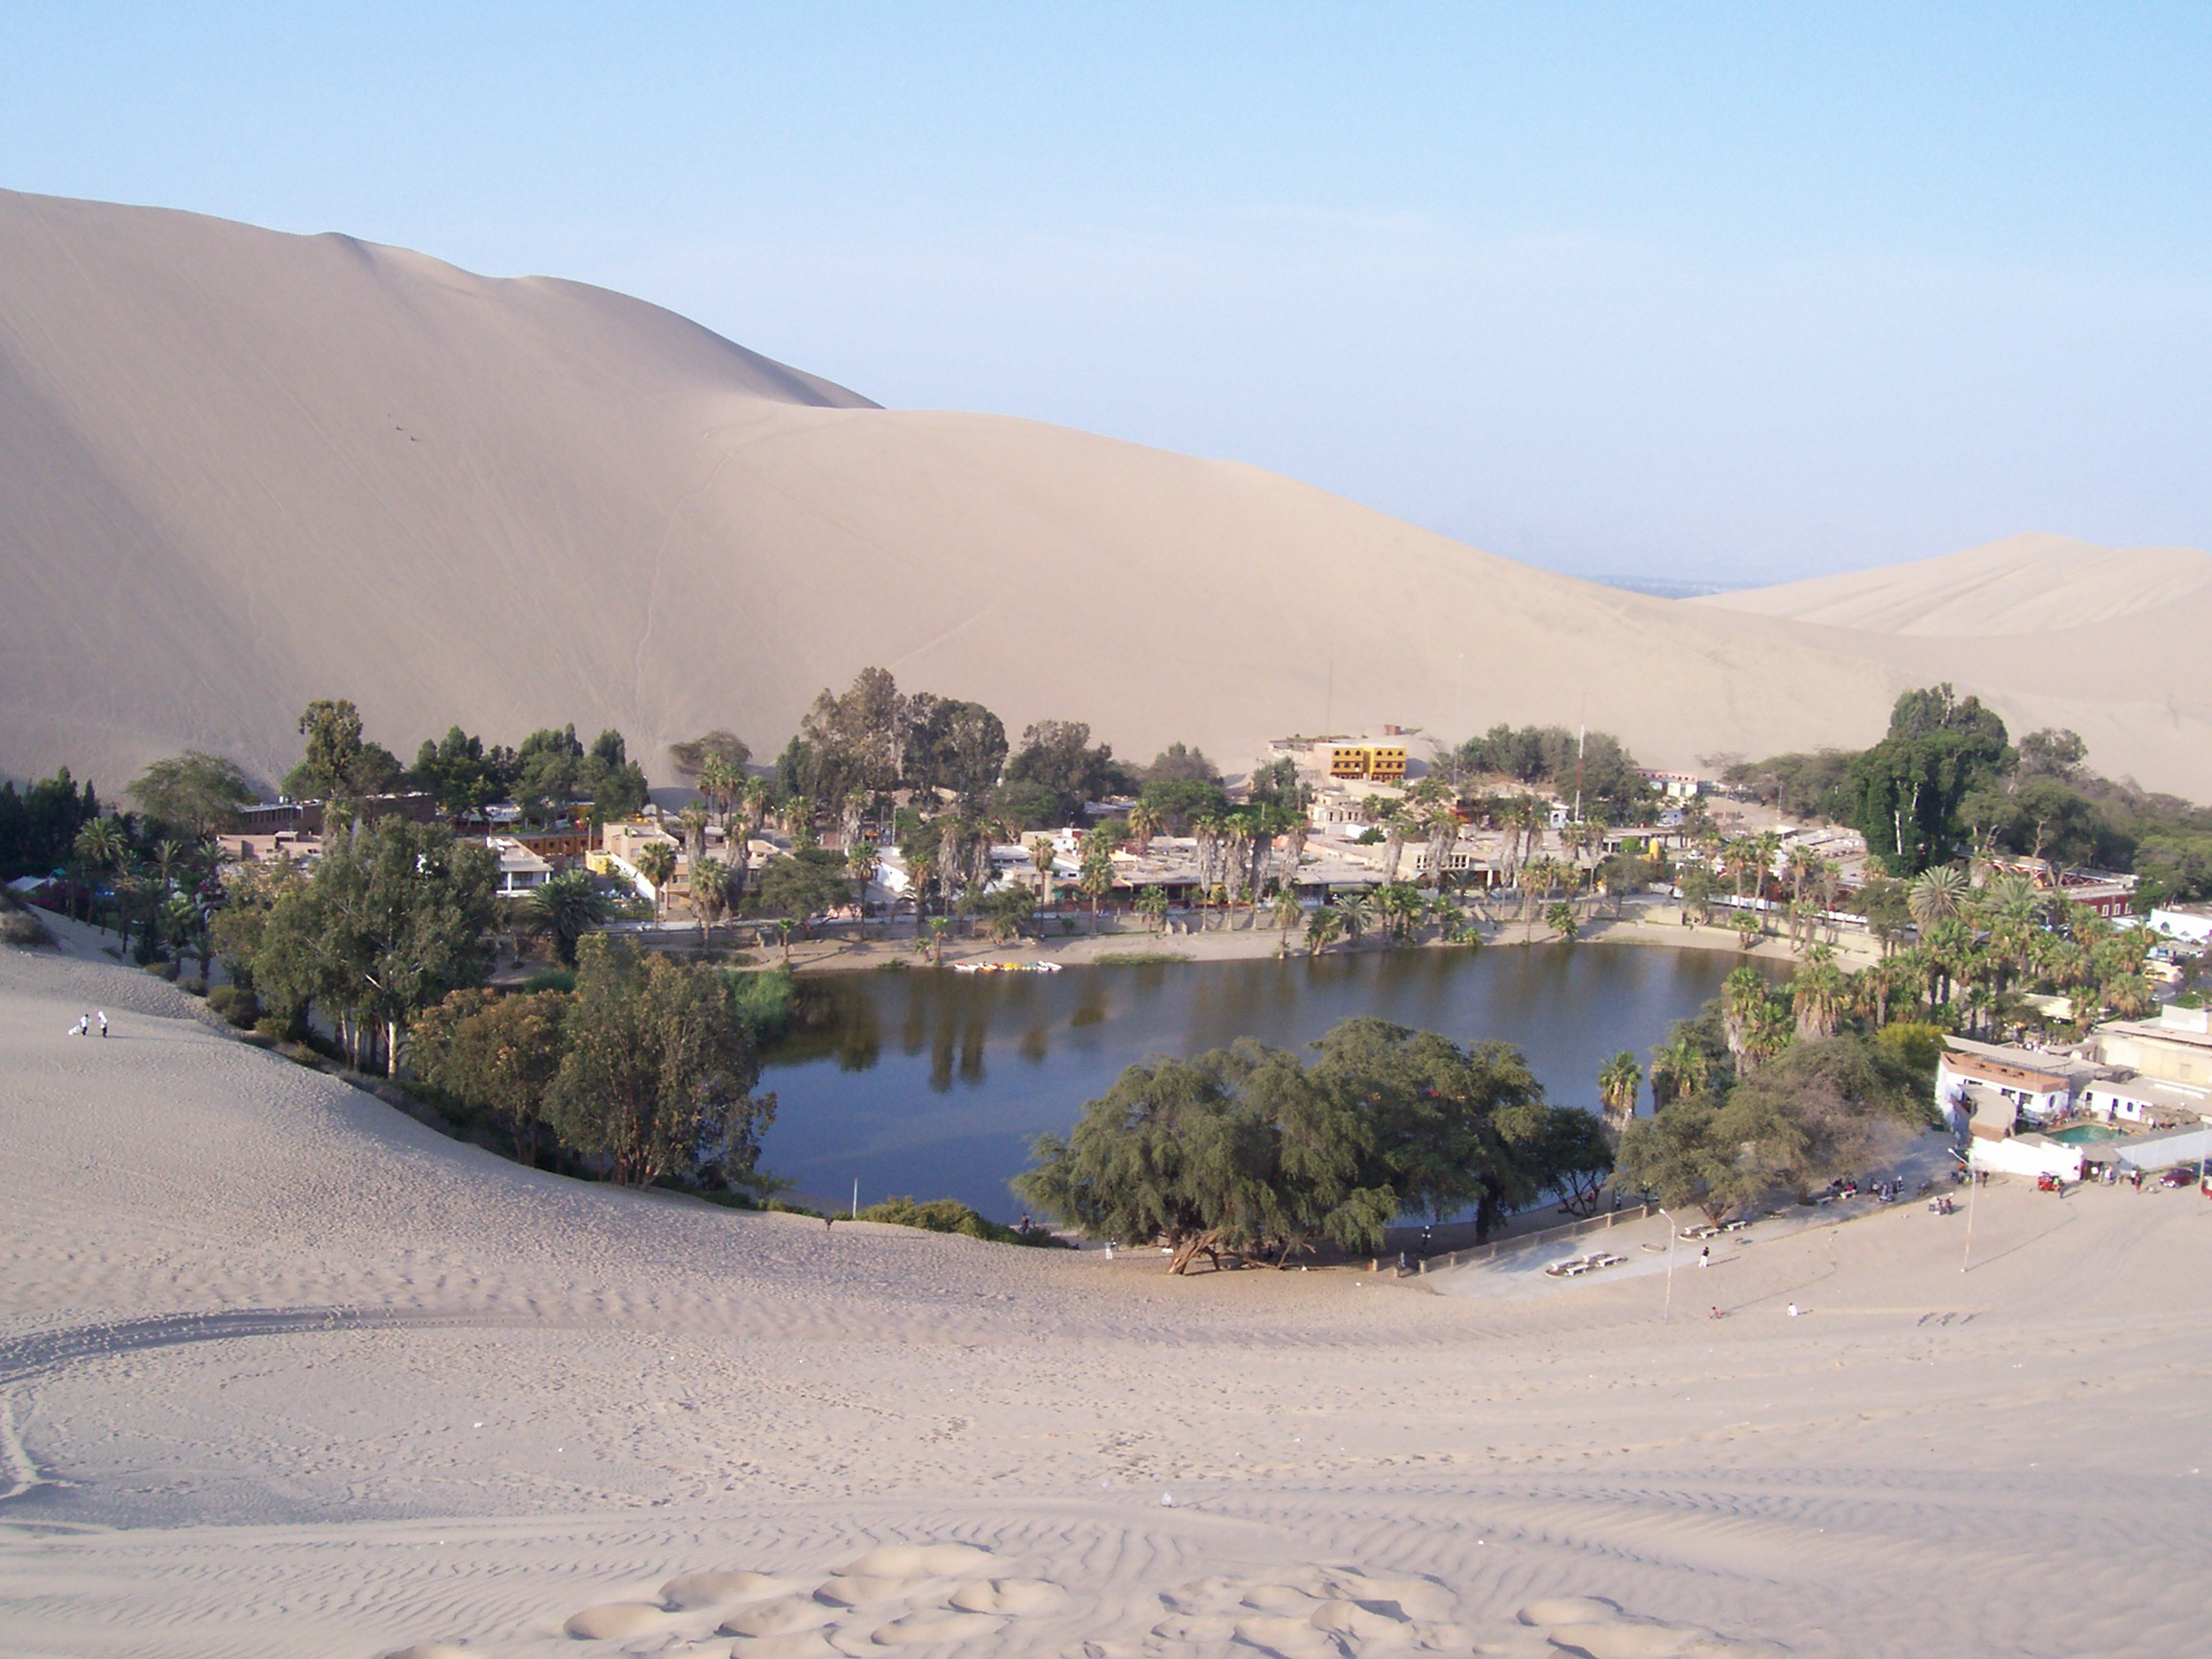 El oasis | Pluges, plugims i ruixats Oasis Geography